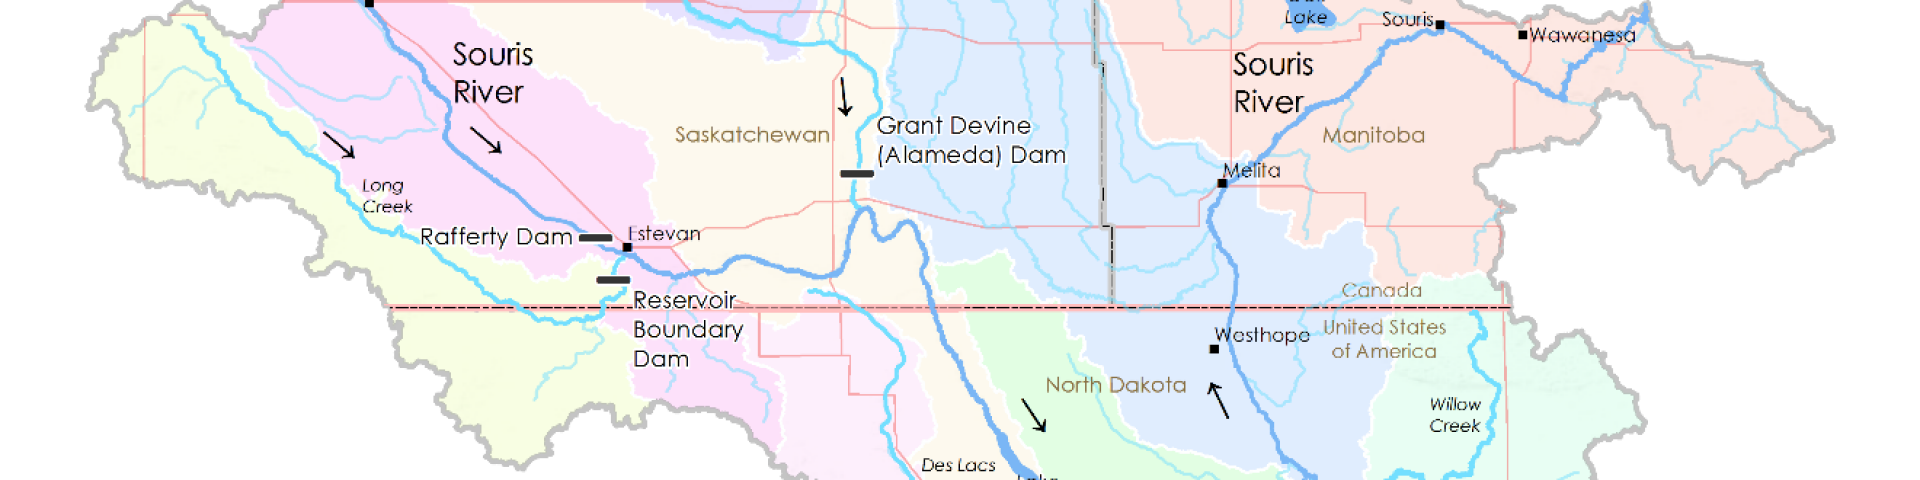 souris river basin map